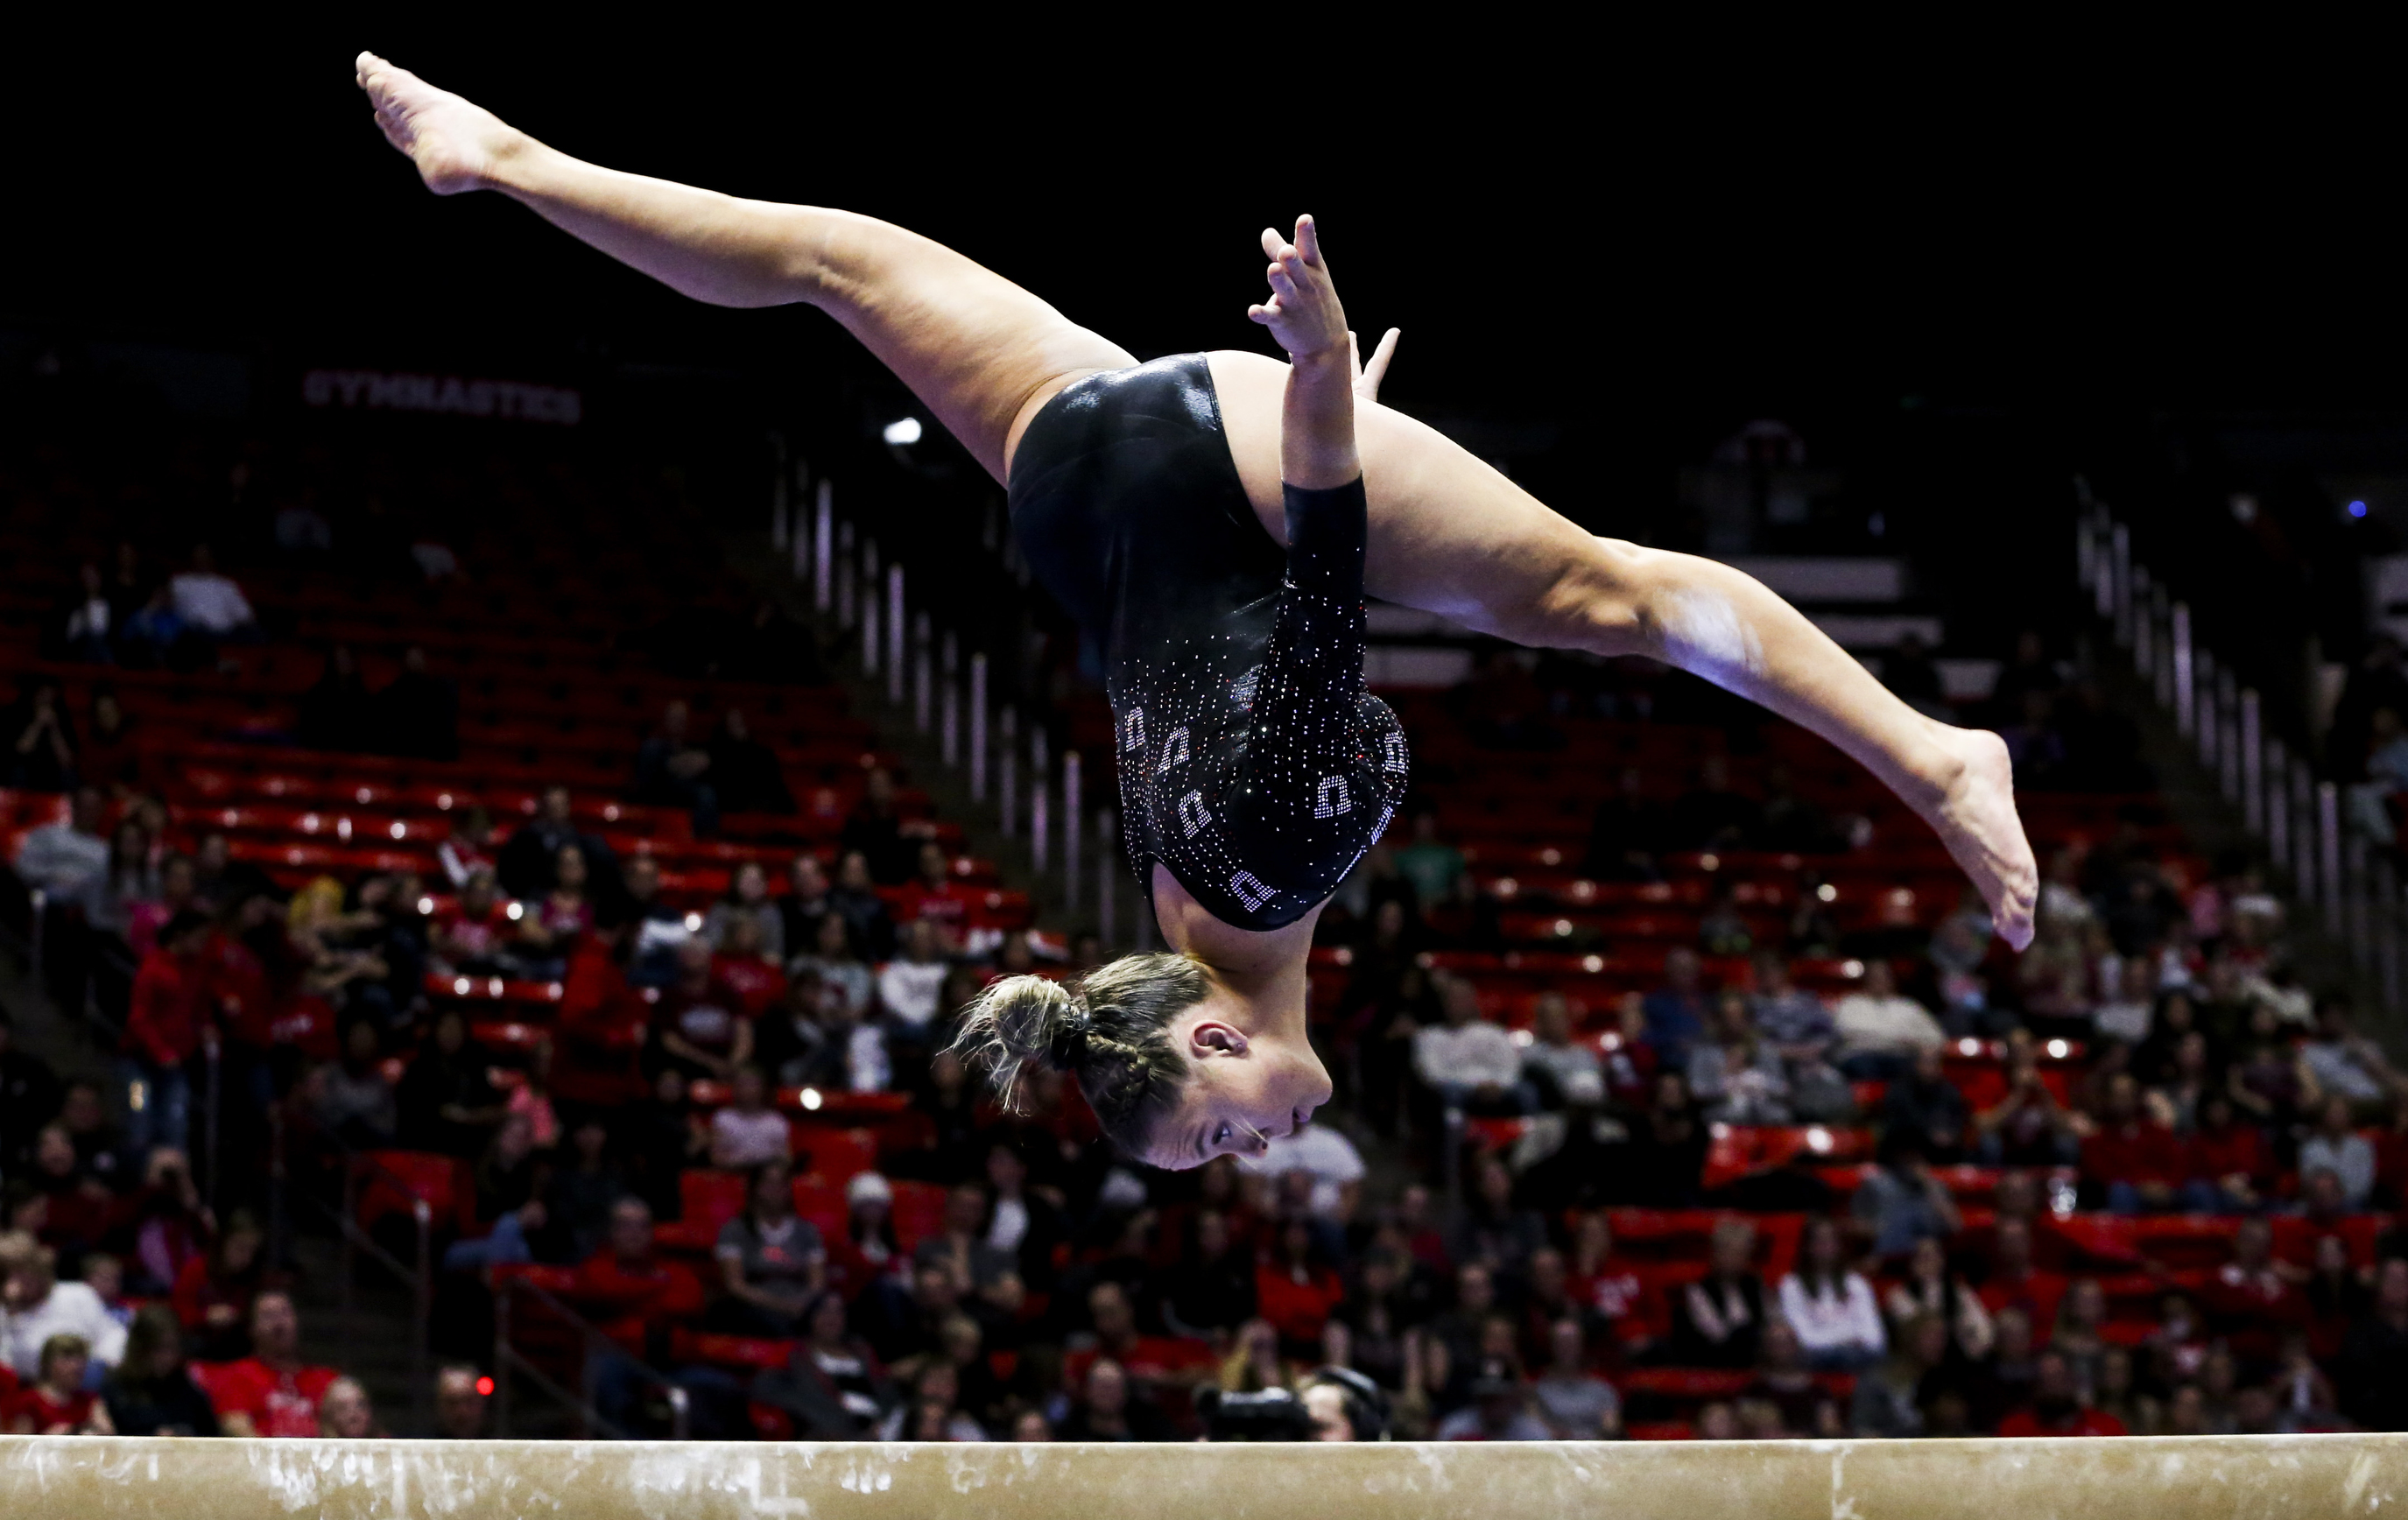 Utah gymnast Maile O'Keefe performs on the beam during the Red Rocks Preview gymnastics event at the Jon M. Huntsman Center on the University of Utah campus in Salt Lake City on Friday, Dec. 13, 2019.